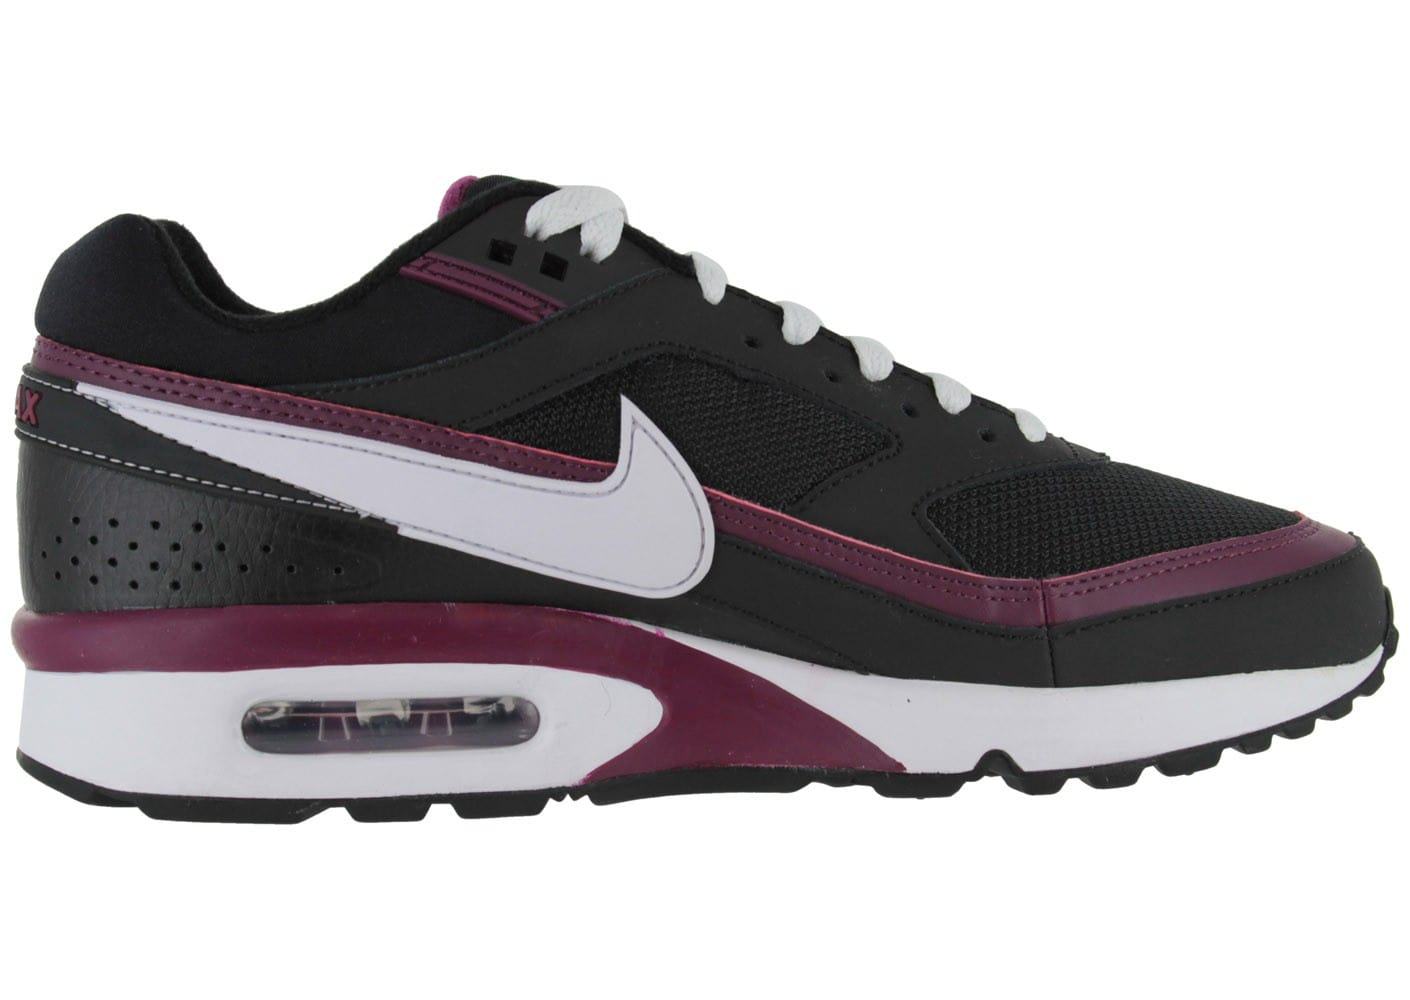 nike air max classic bw noire textile chaussures homme. Black Bedroom Furniture Sets. Home Design Ideas